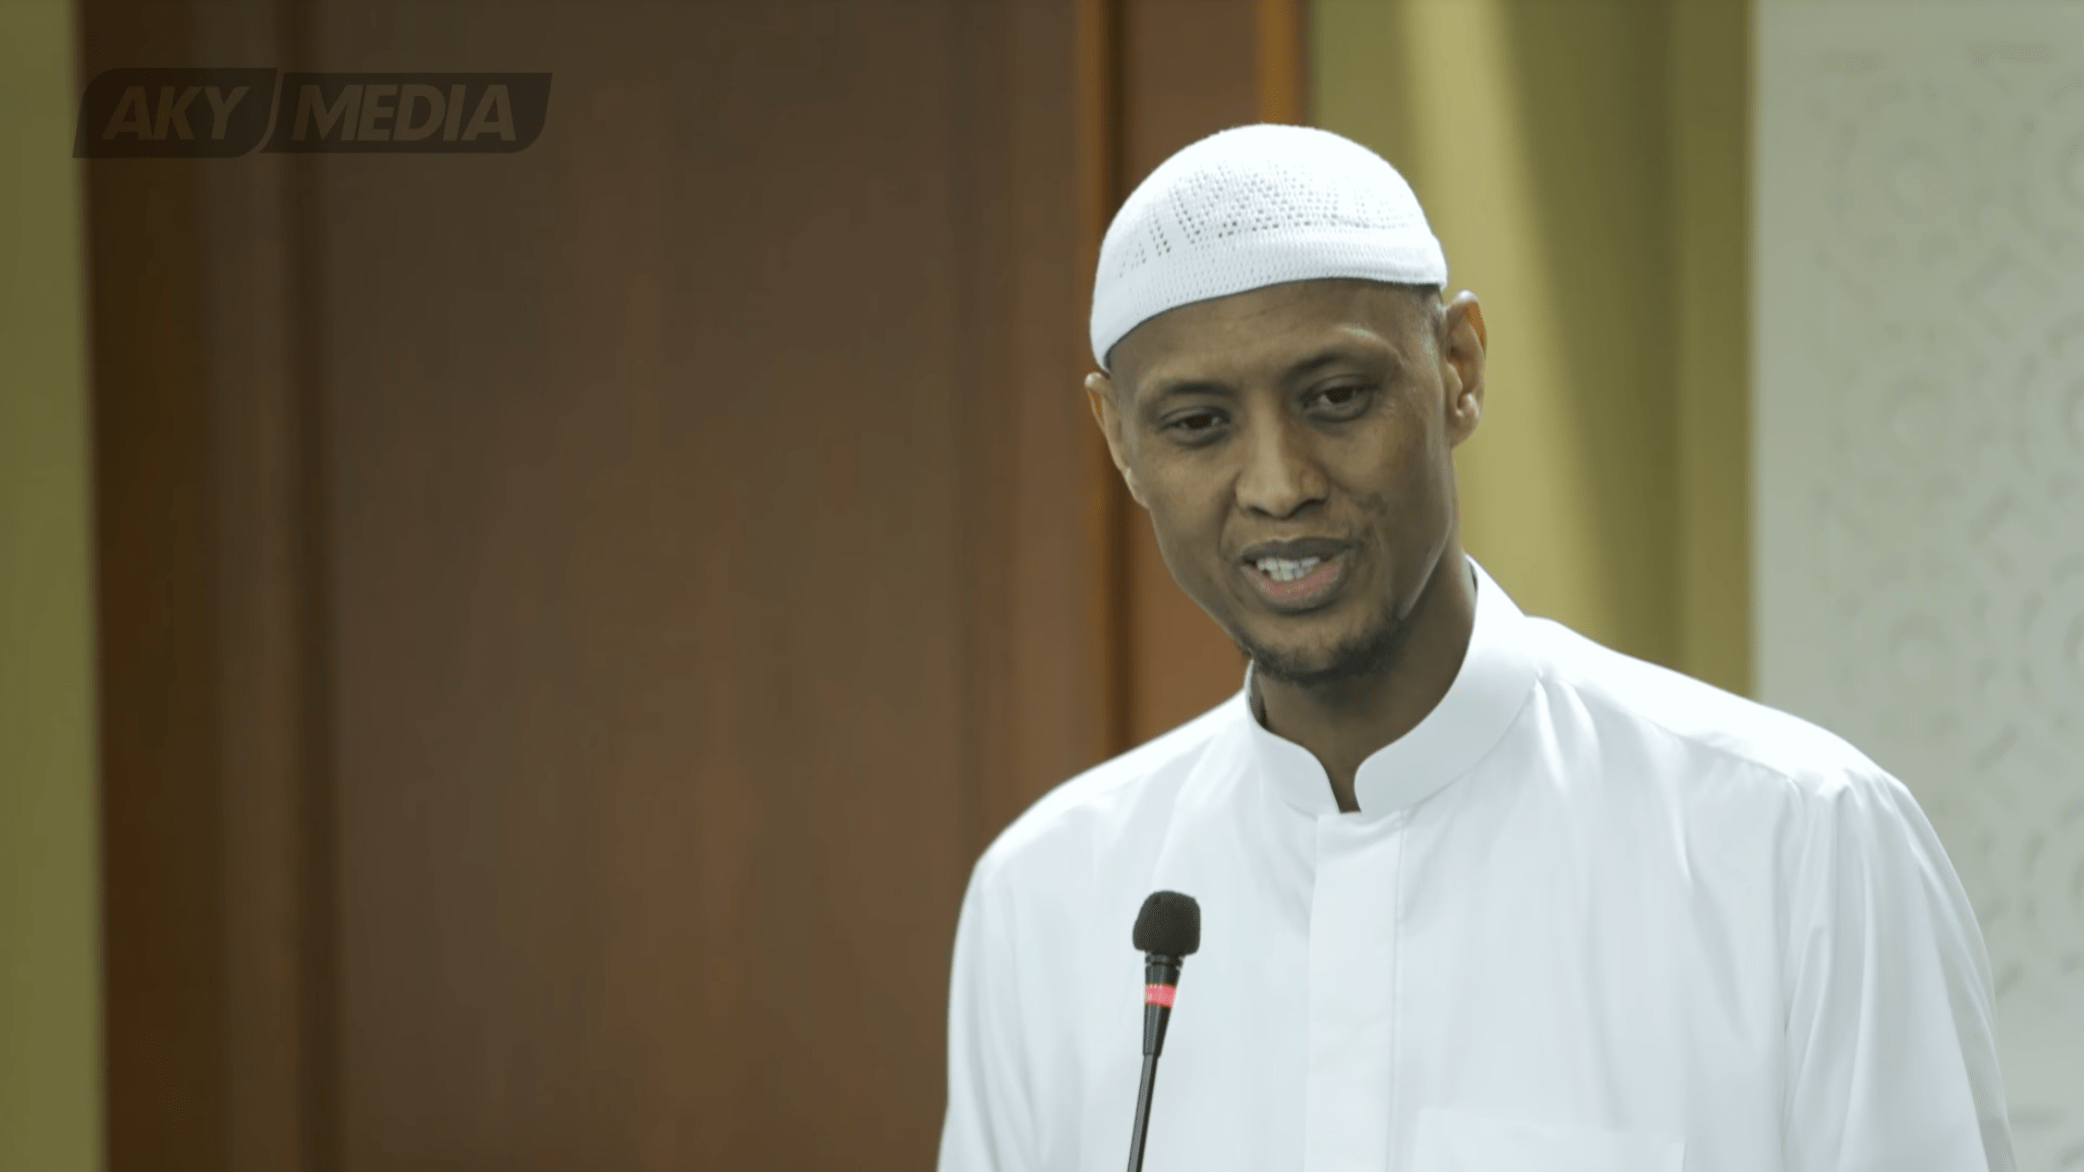 Said Rageah – Challenges of a Muslim-Minority Environment